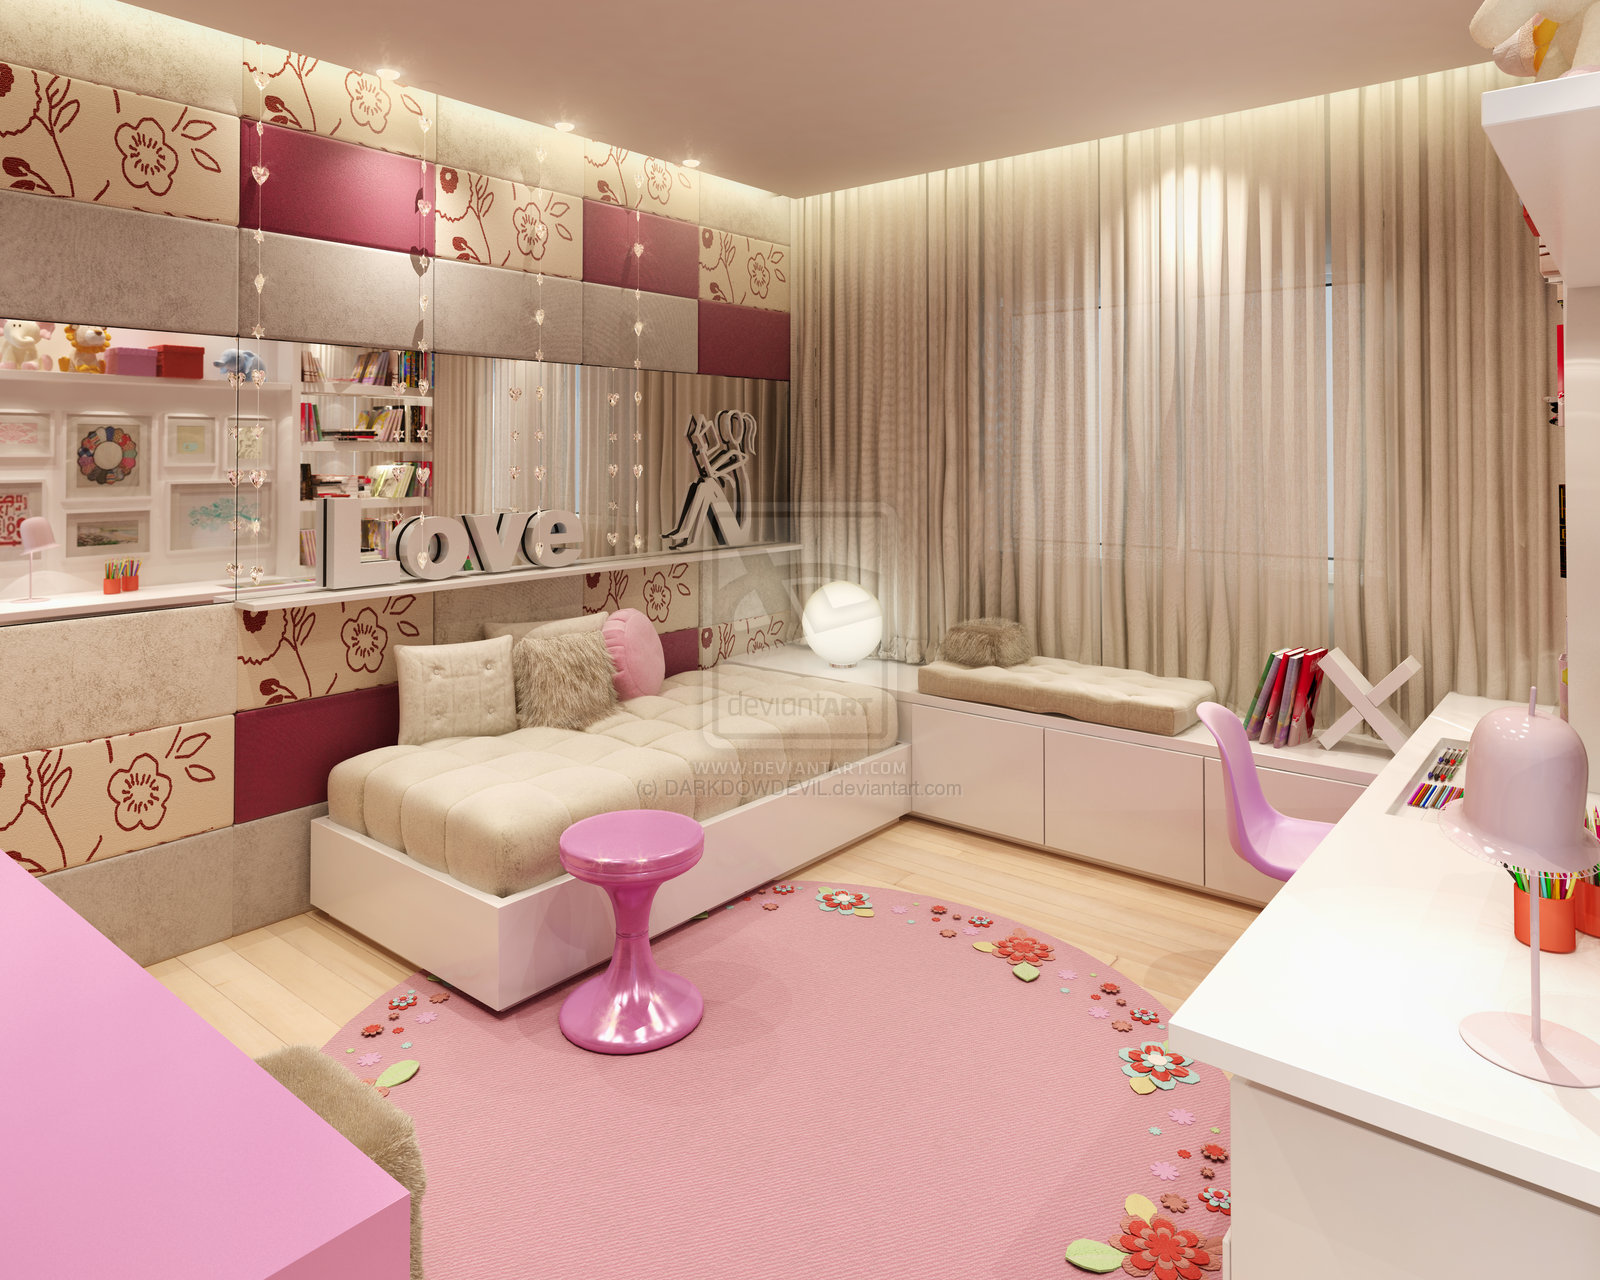 Girly bedroom design ideas azee - Girls bed room ...